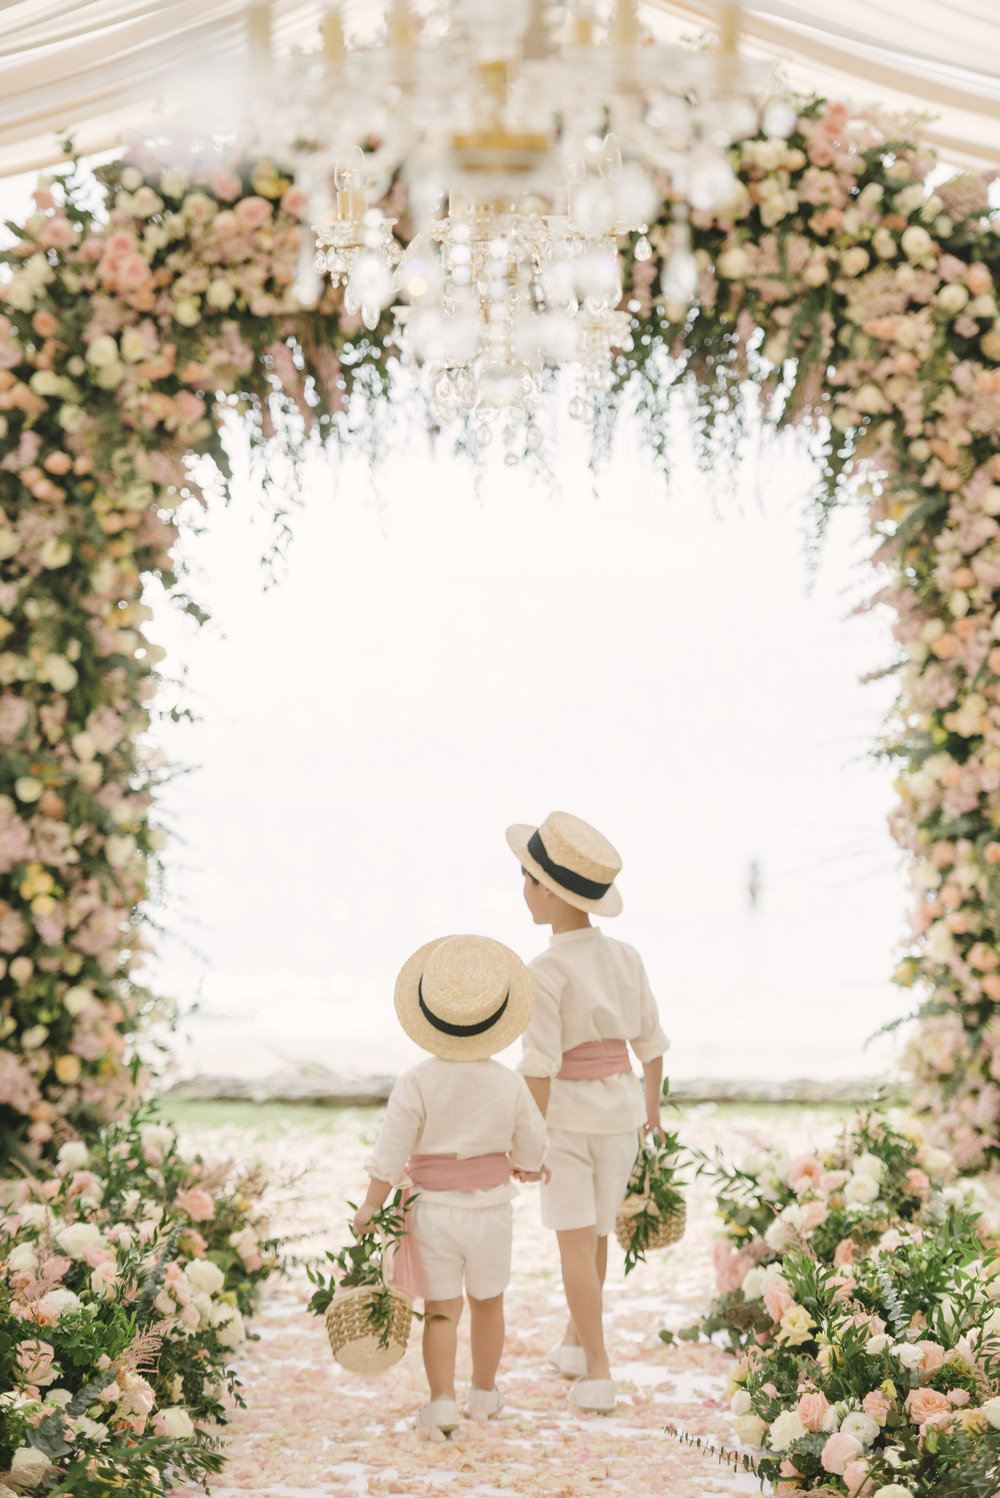 Intimate Thailand Wedding Pastel Garden 01